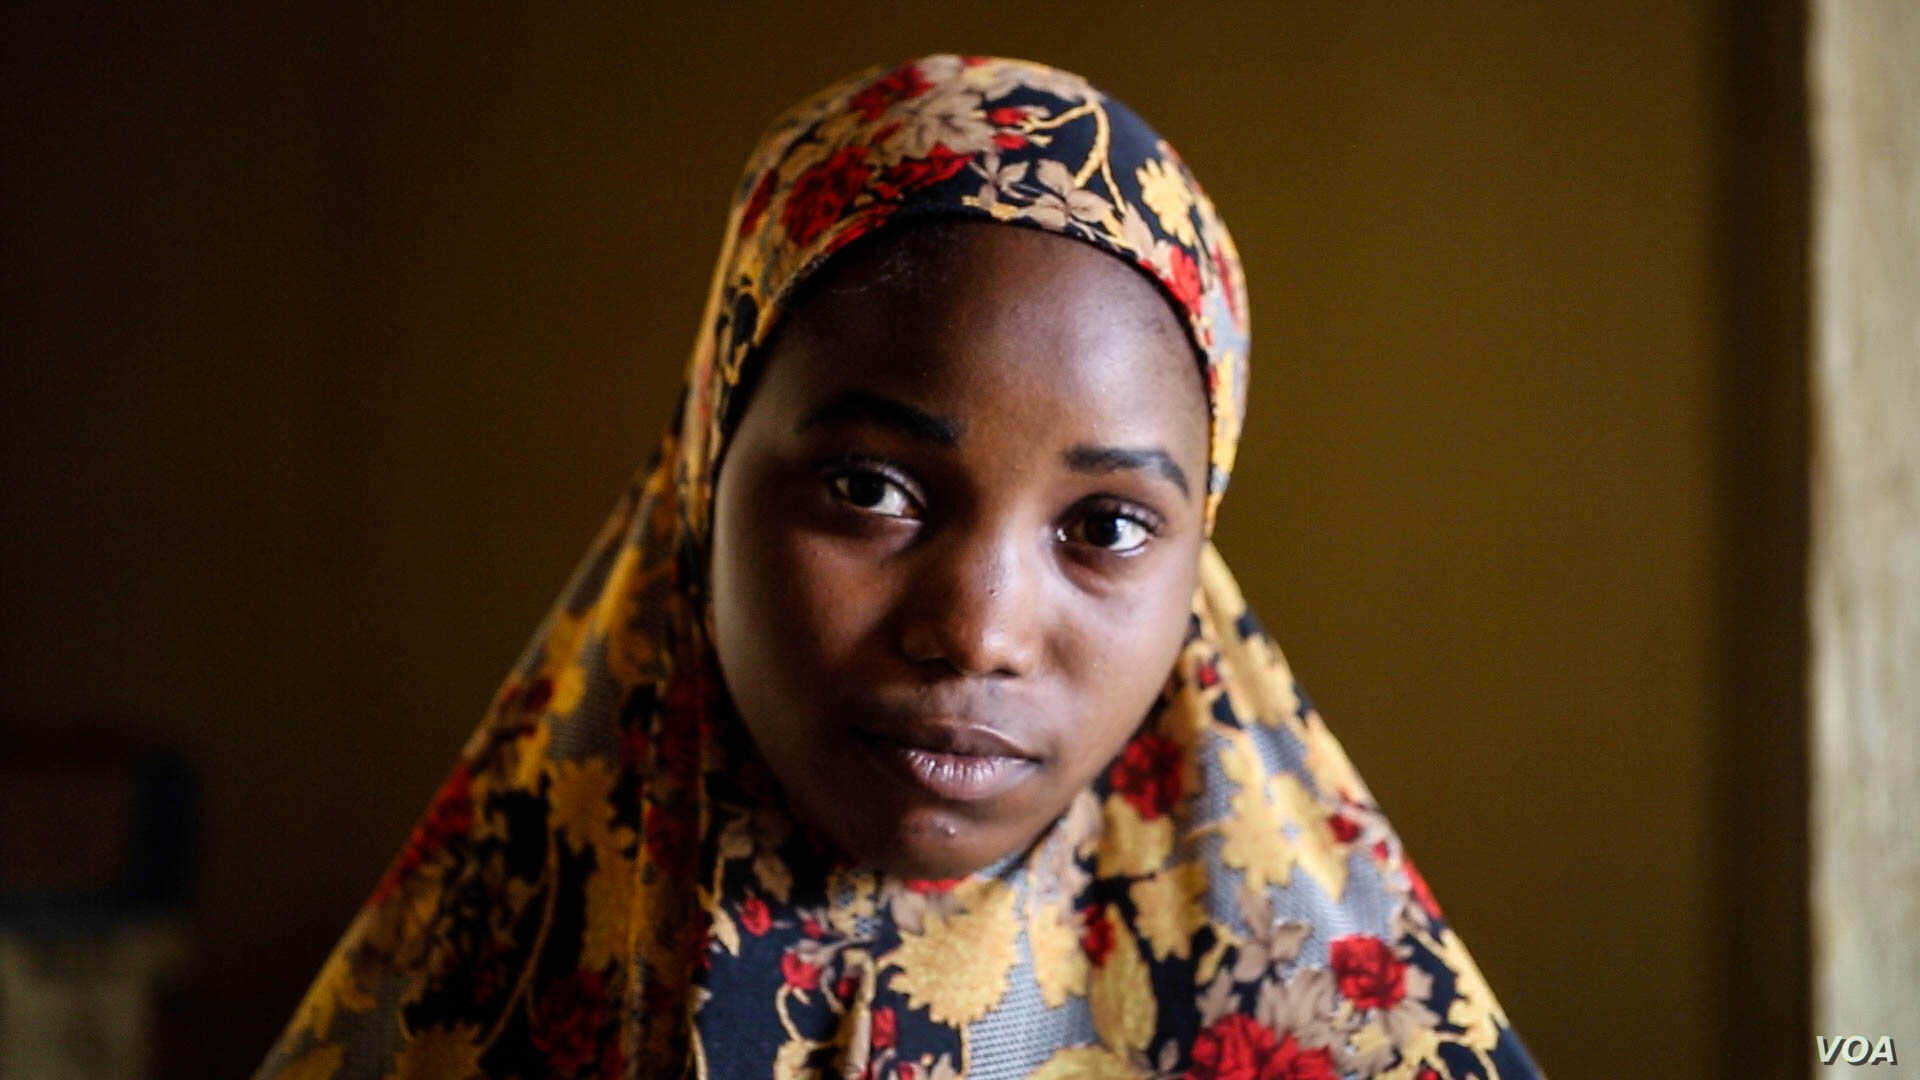 Sumayya Musa said she has defied her community's expectations by refusing to get married. Single and 18-years-old, she says people in her village ridicule her. (C. Oduah/VOA)